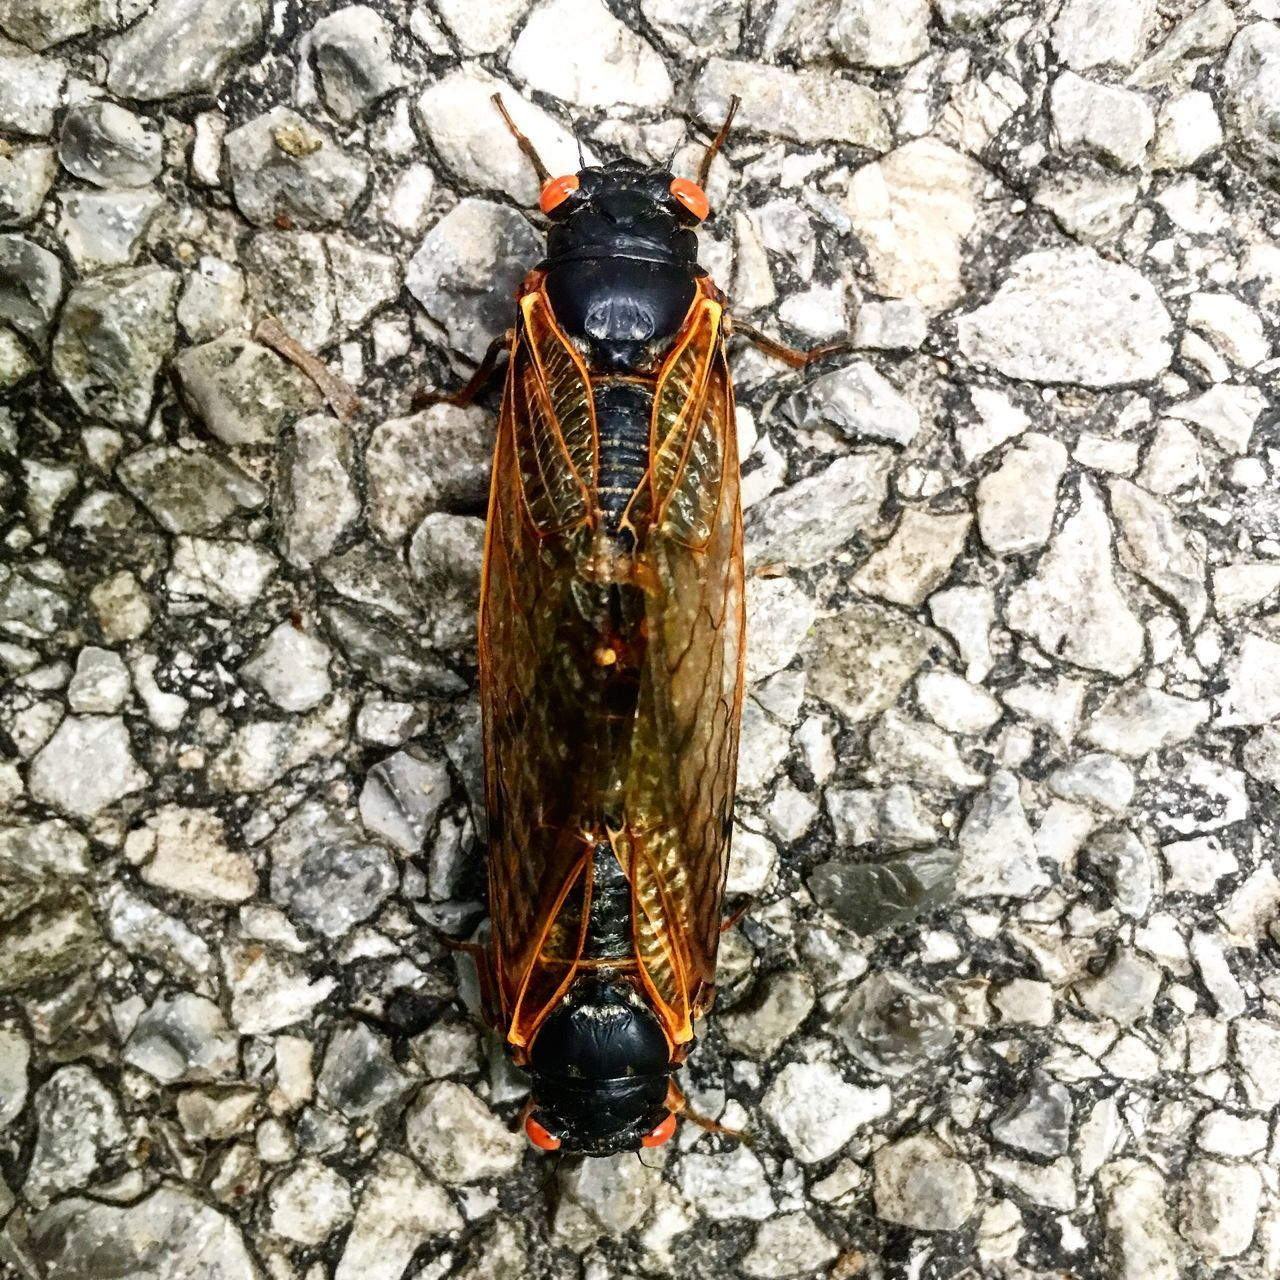 animal wildlife, animal themes, one animal, animal, animals in the wild, invertebrate, insect, no people, day, close-up, animal wing, outdoors, nature, solid, directly above, wall - building feature, wall, high angle view, stone - object, full length, butterfly - insect